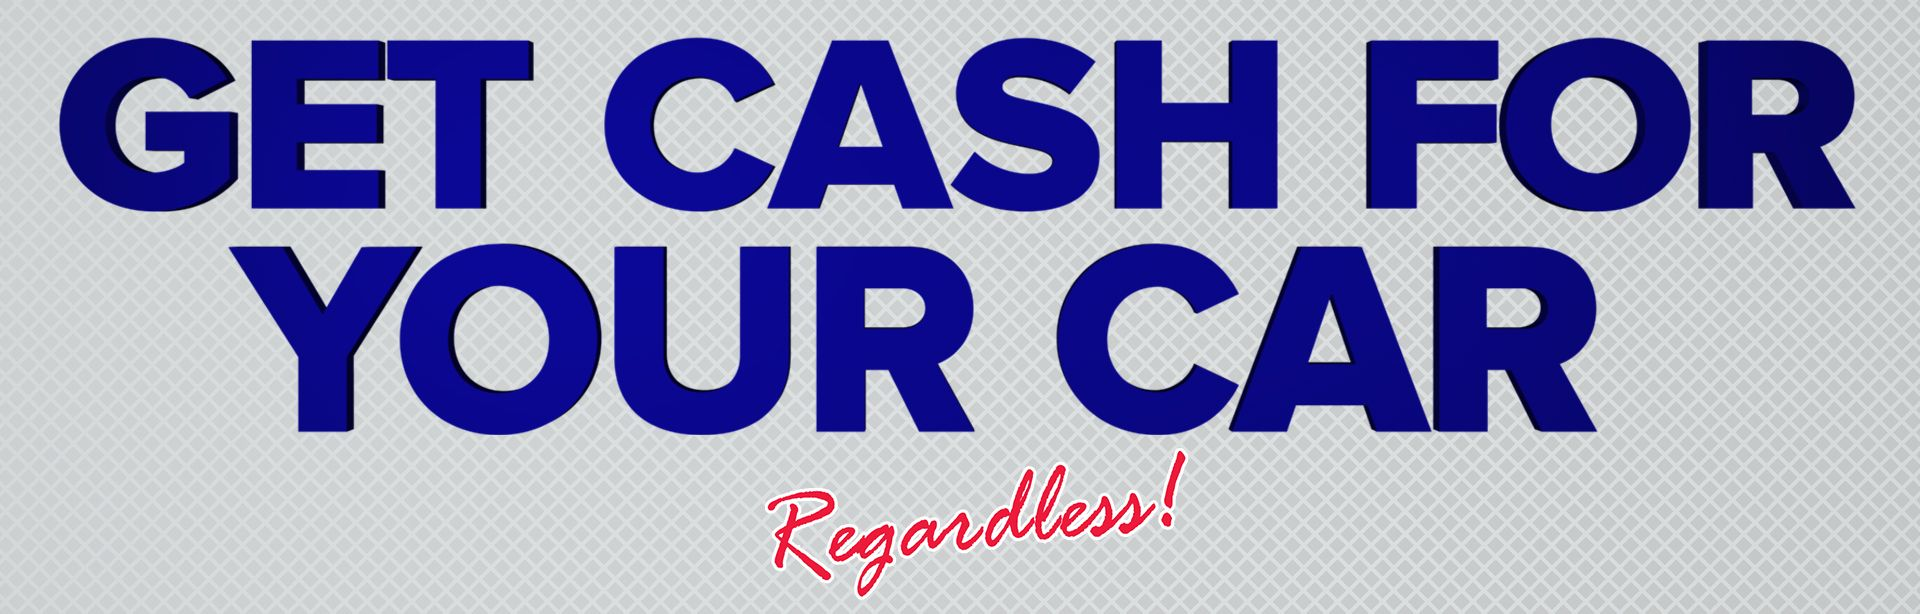 Get Cash for Your Car TODAY!